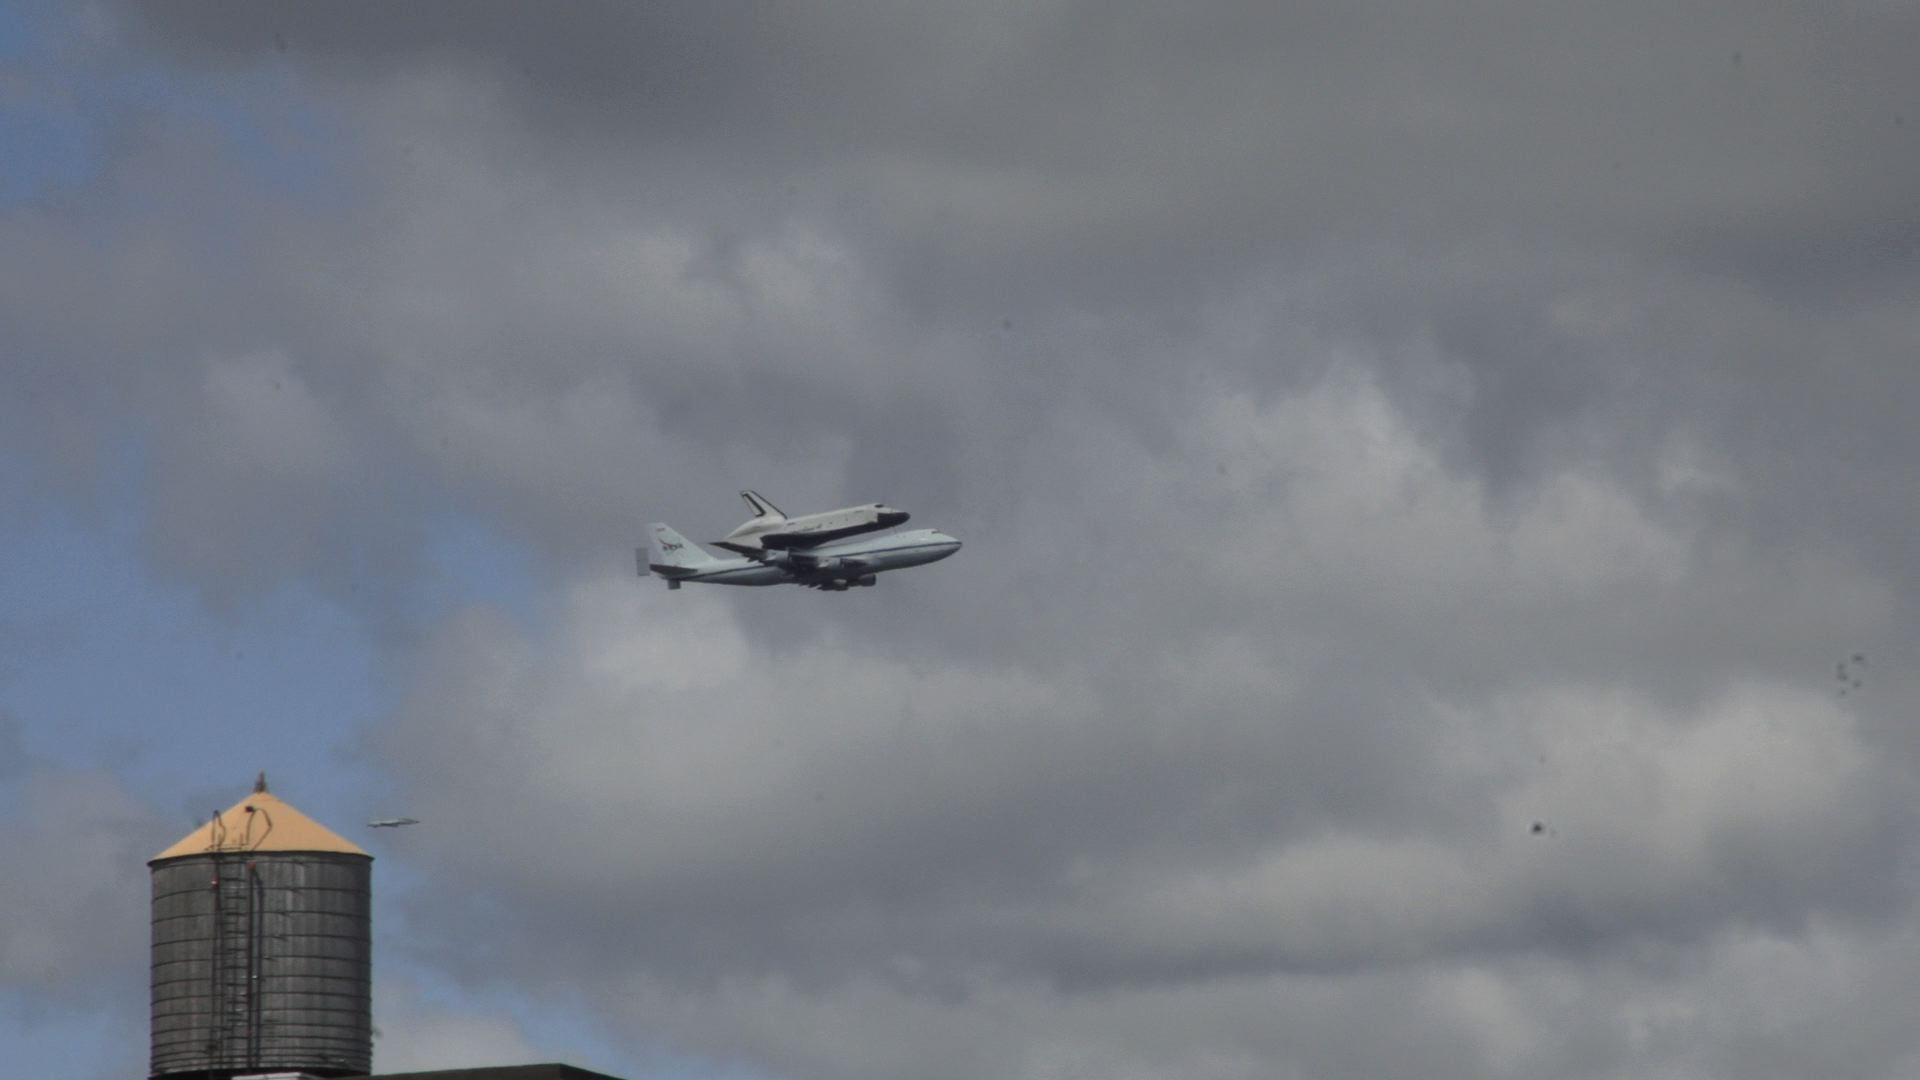 Click here to read The Space Shuttle Looks Awesome Flying Across New York's Skyline